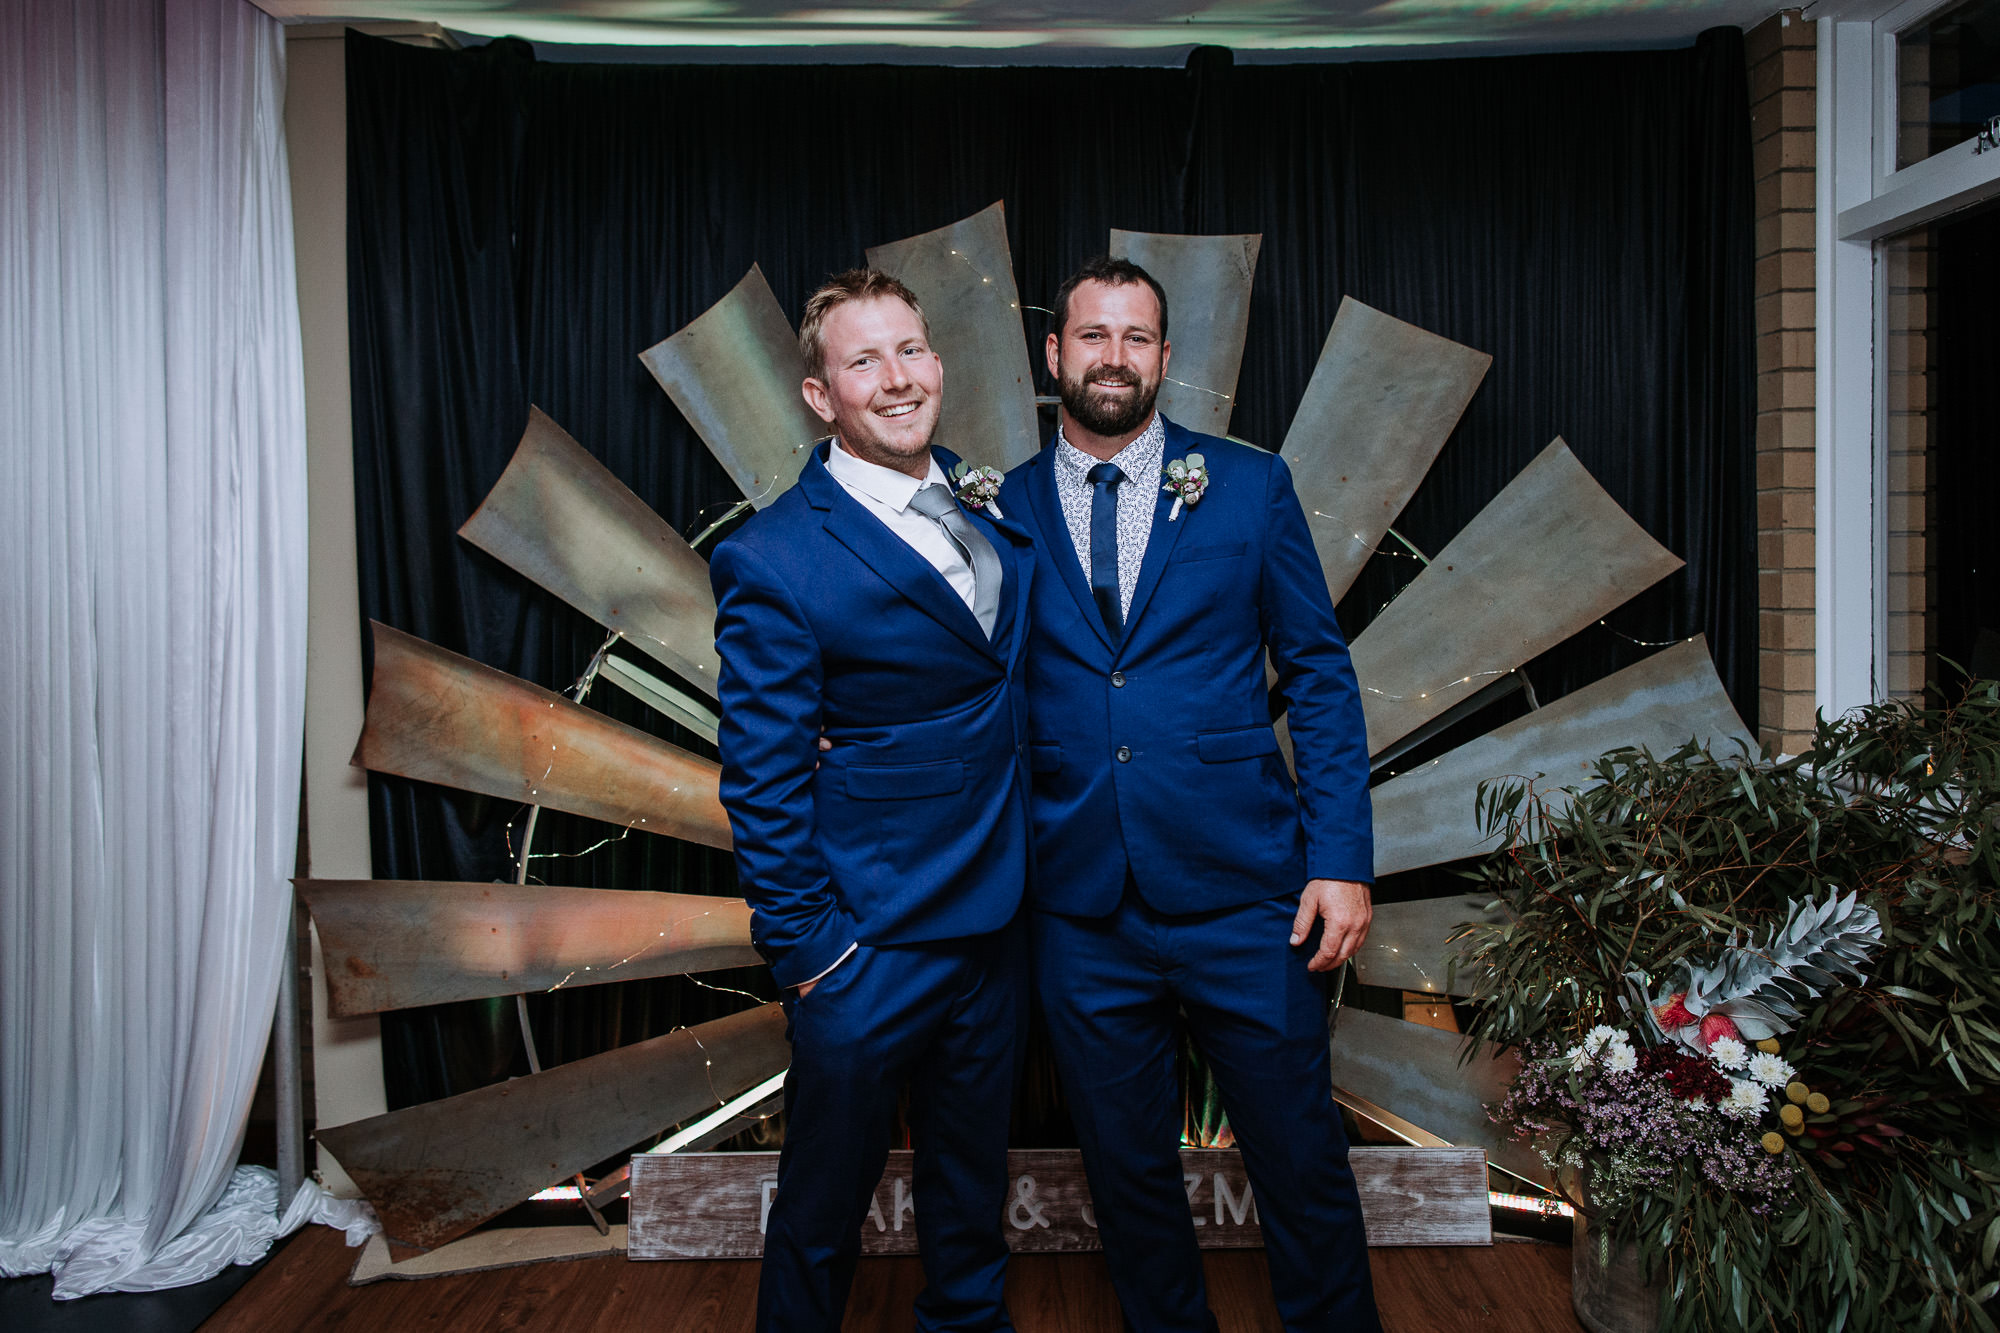 Perth Wedding Groom & Groomsman